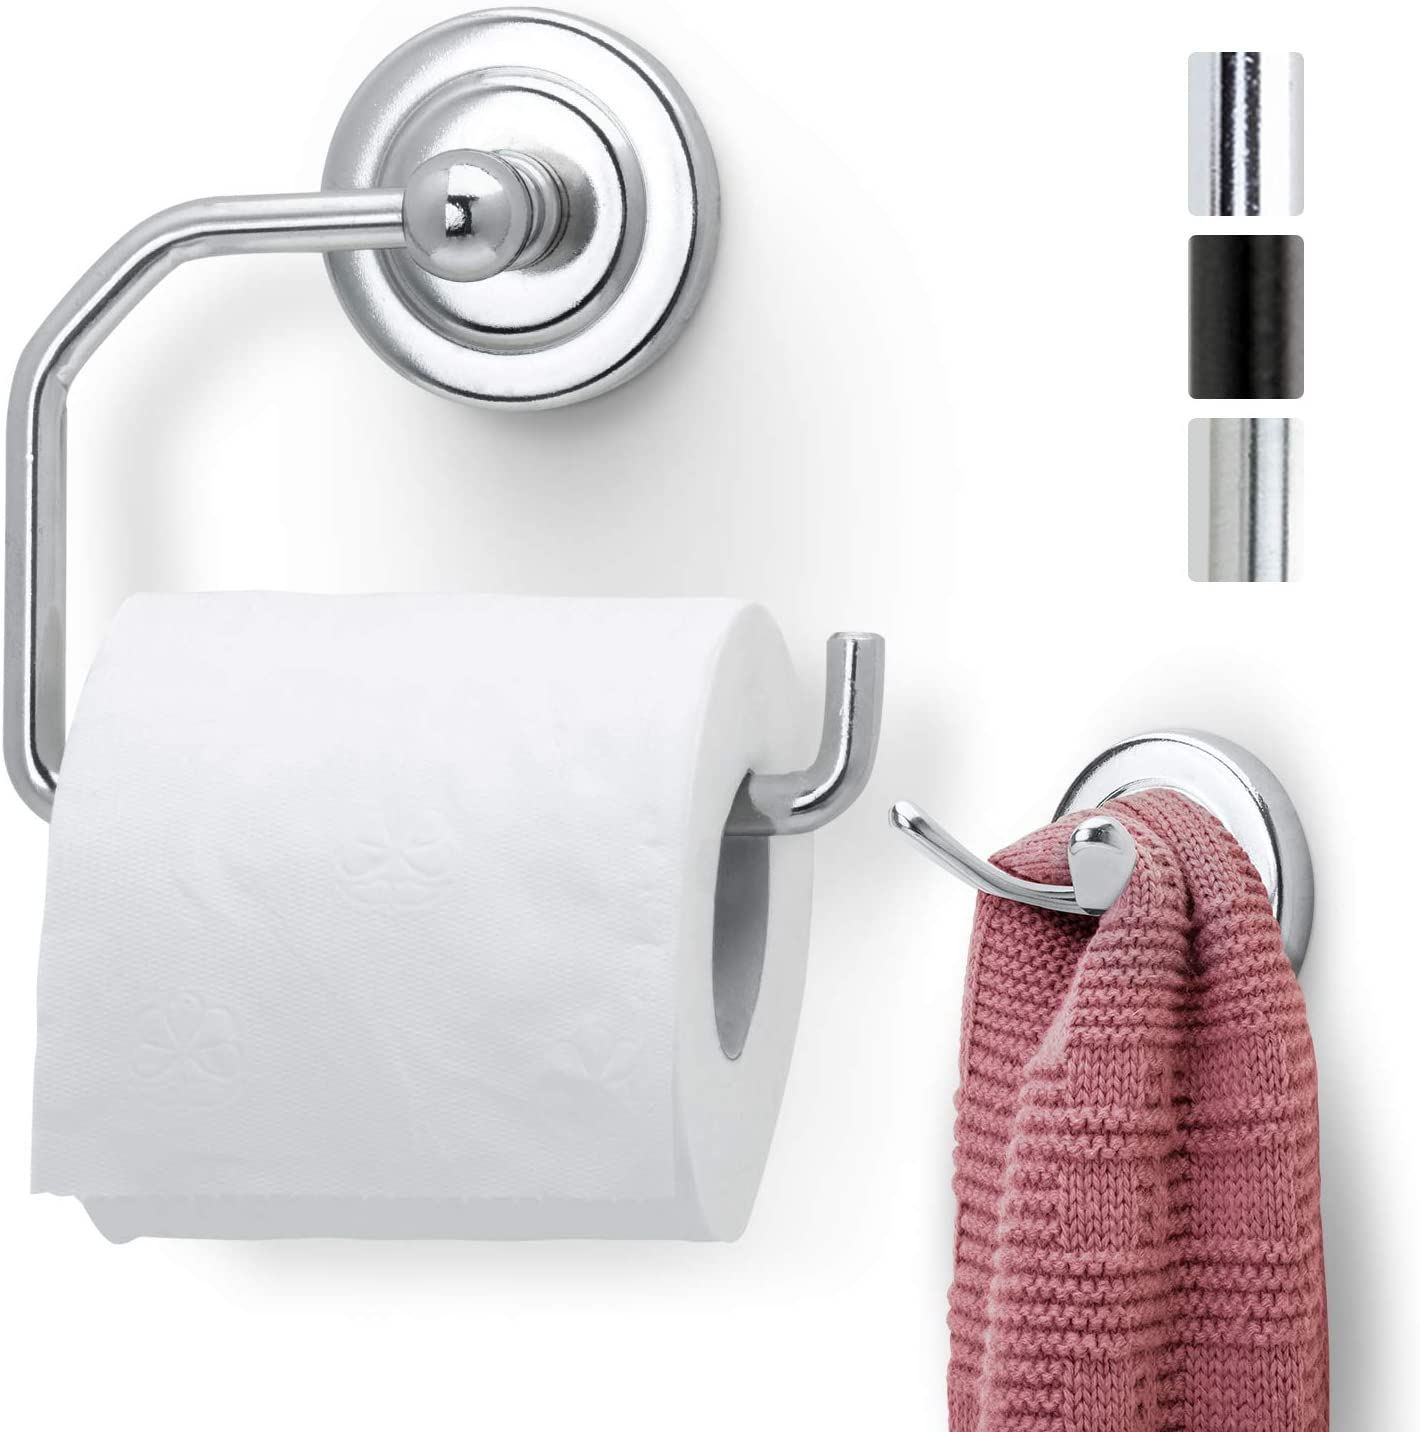 Amazon Com Jack N Drill 1 Pack Toilet Paper Holder With Free Towel Hook European Style Wall Mounted Toilet Paper Bathroom Organizer And Storage In Chrome Finish For Bathroom Kitchen Home Office Home